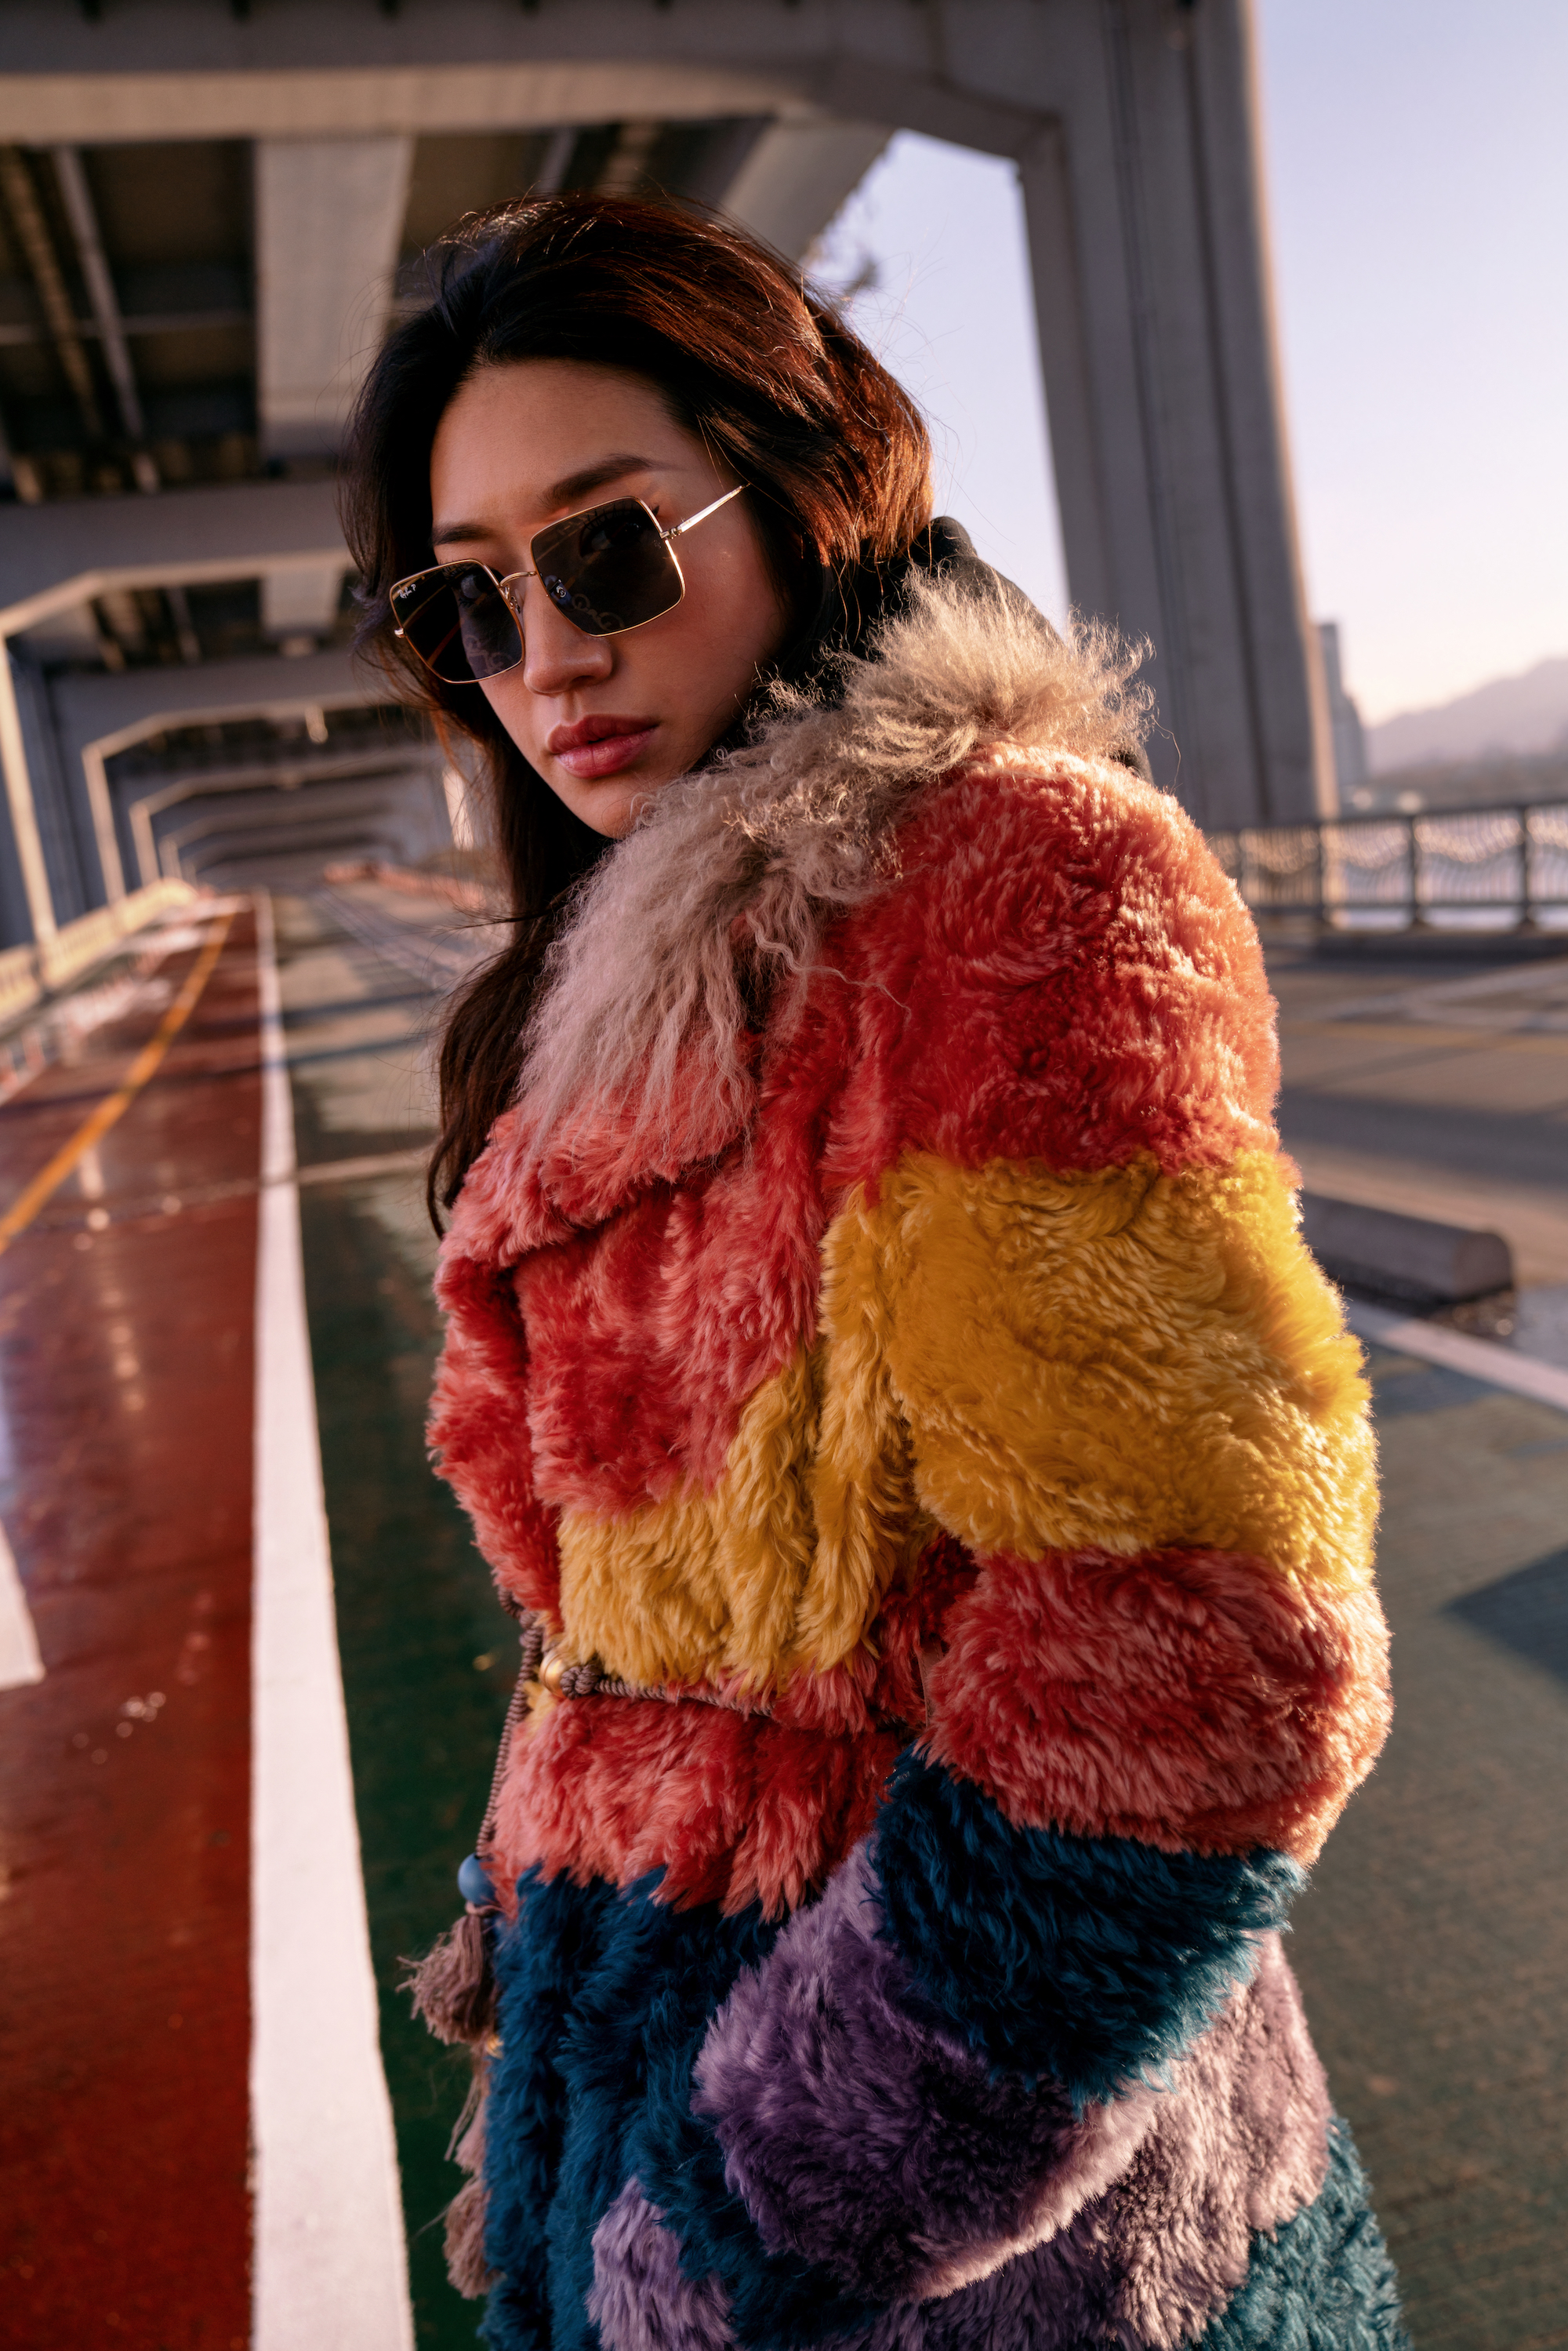 Dj Peggy Gou Has Teamed Up With Ray Ban For A Sunglasses